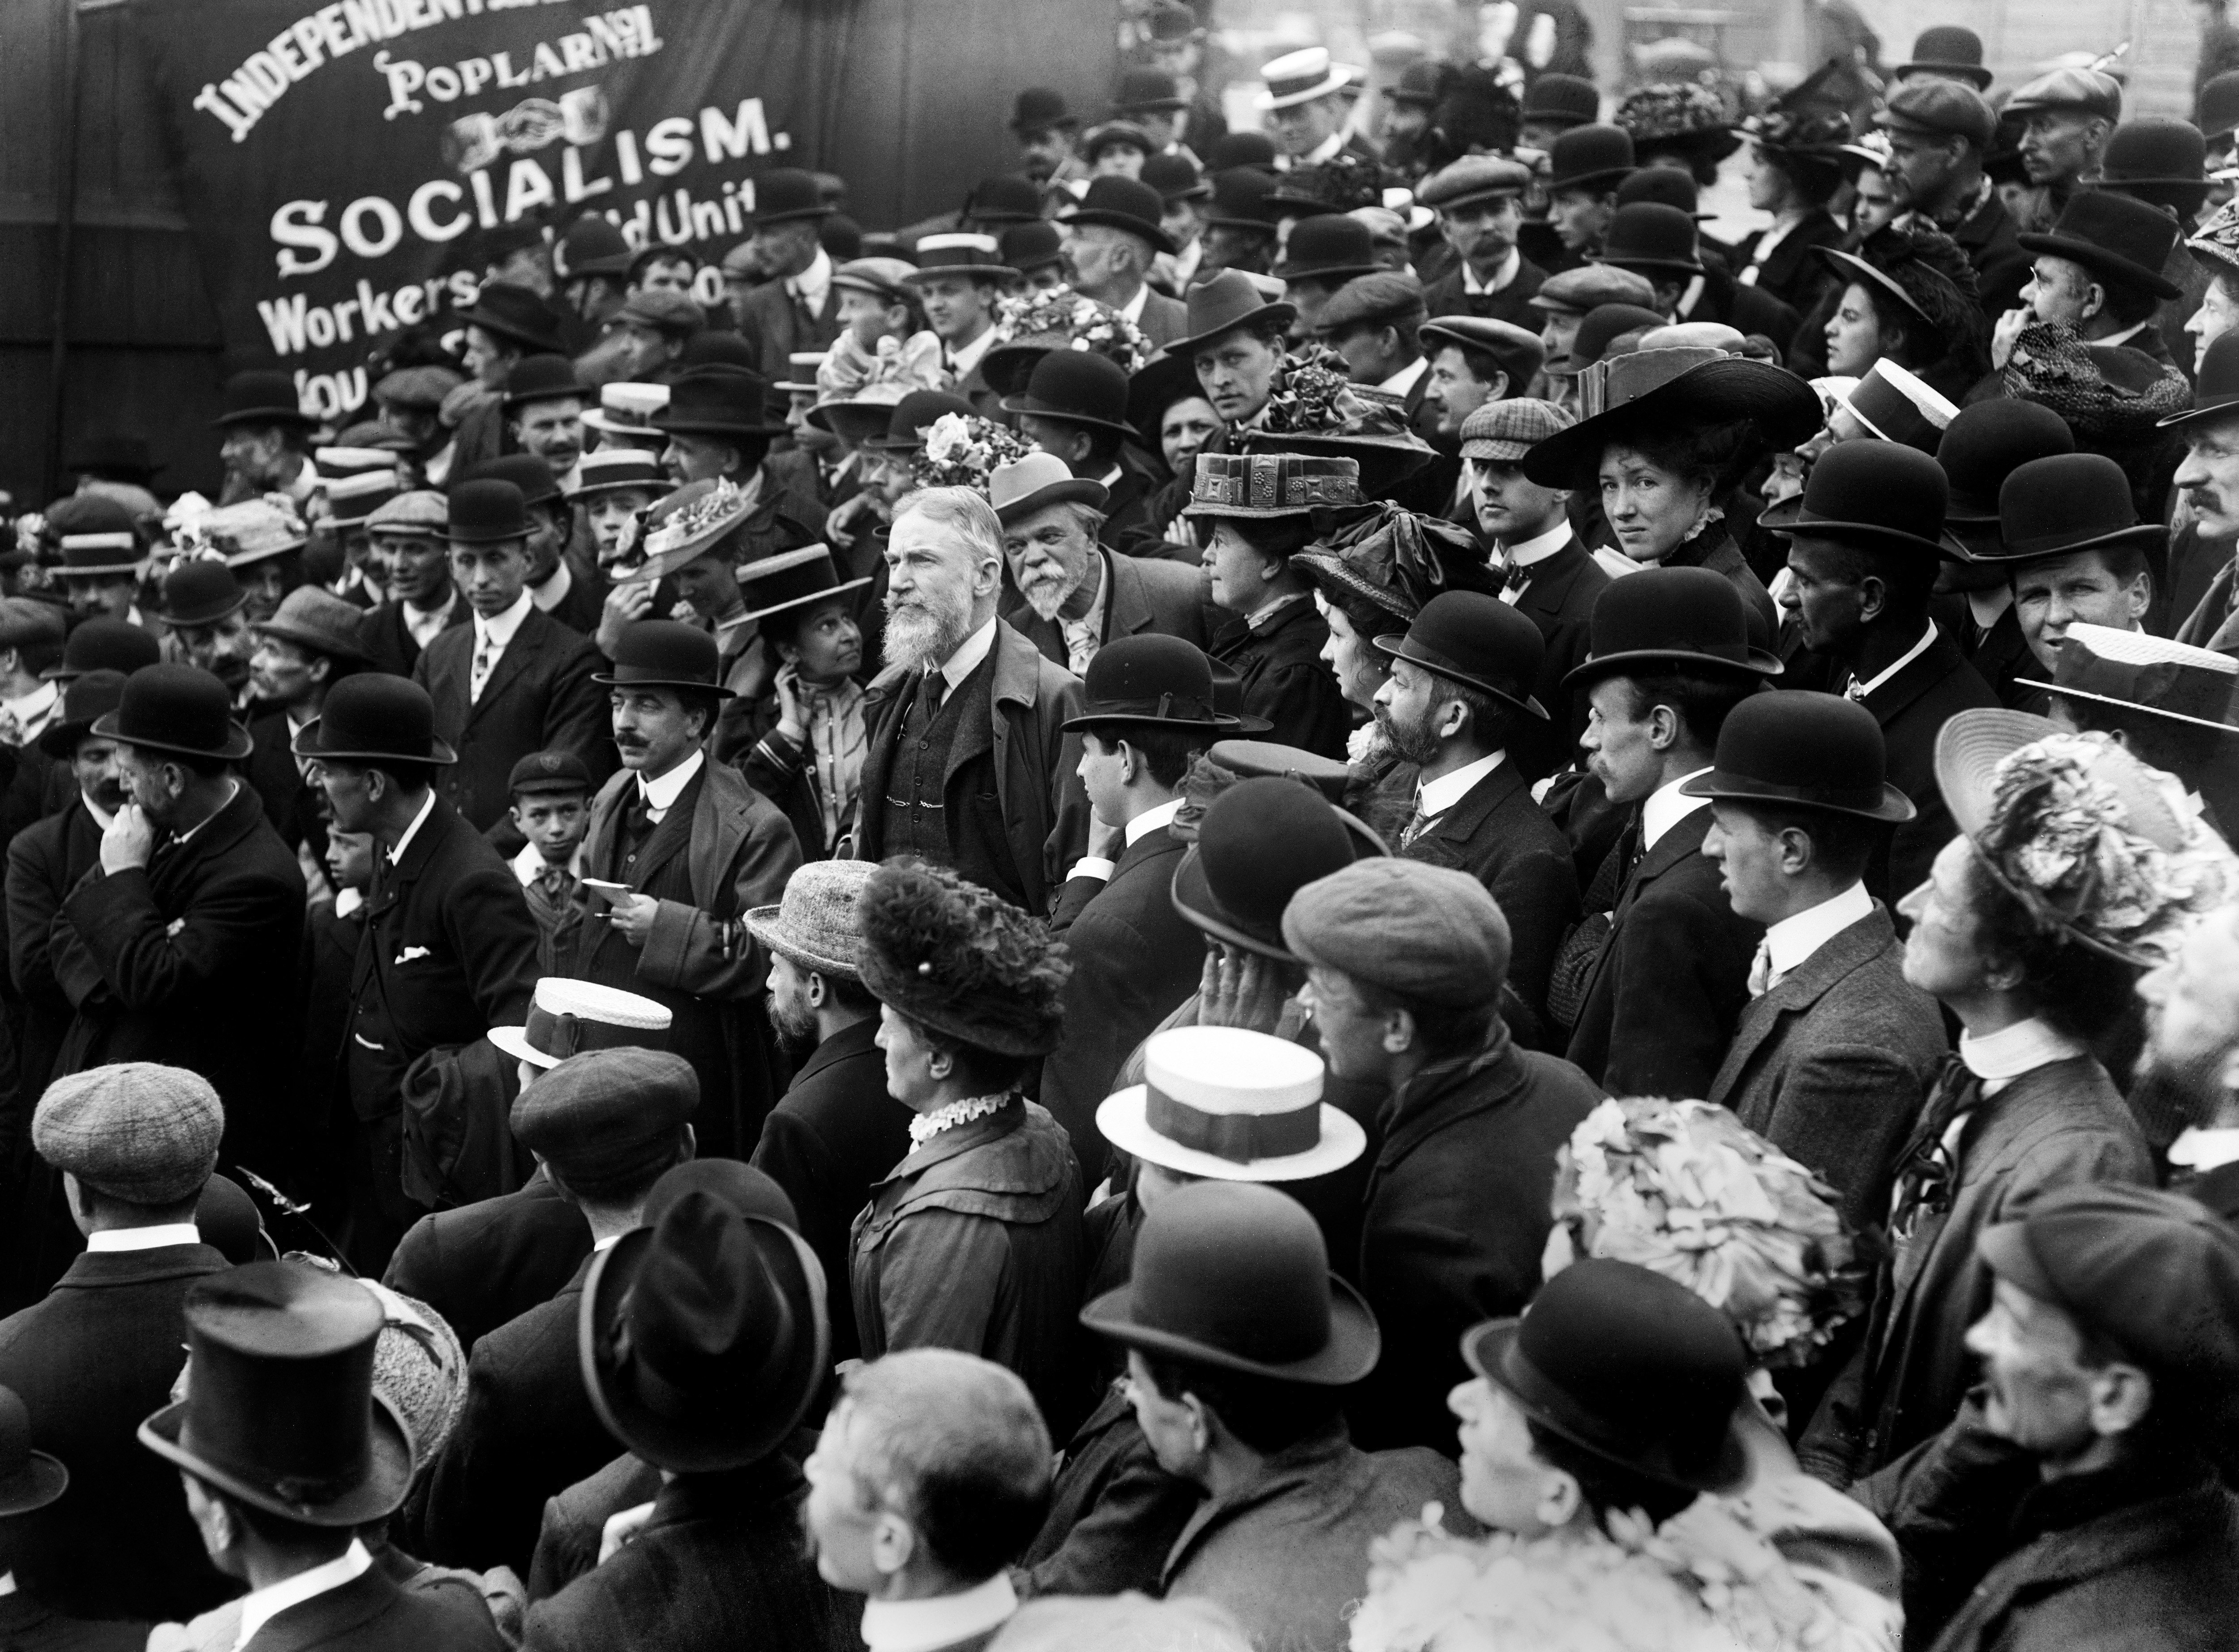 A face in the crowd, George Bernard Shaw (centre/beard), Irish dramatist and critic at an anti-vivisection protest at the Square. He was an active socialist and became a member of the Fabian Society, c1910.